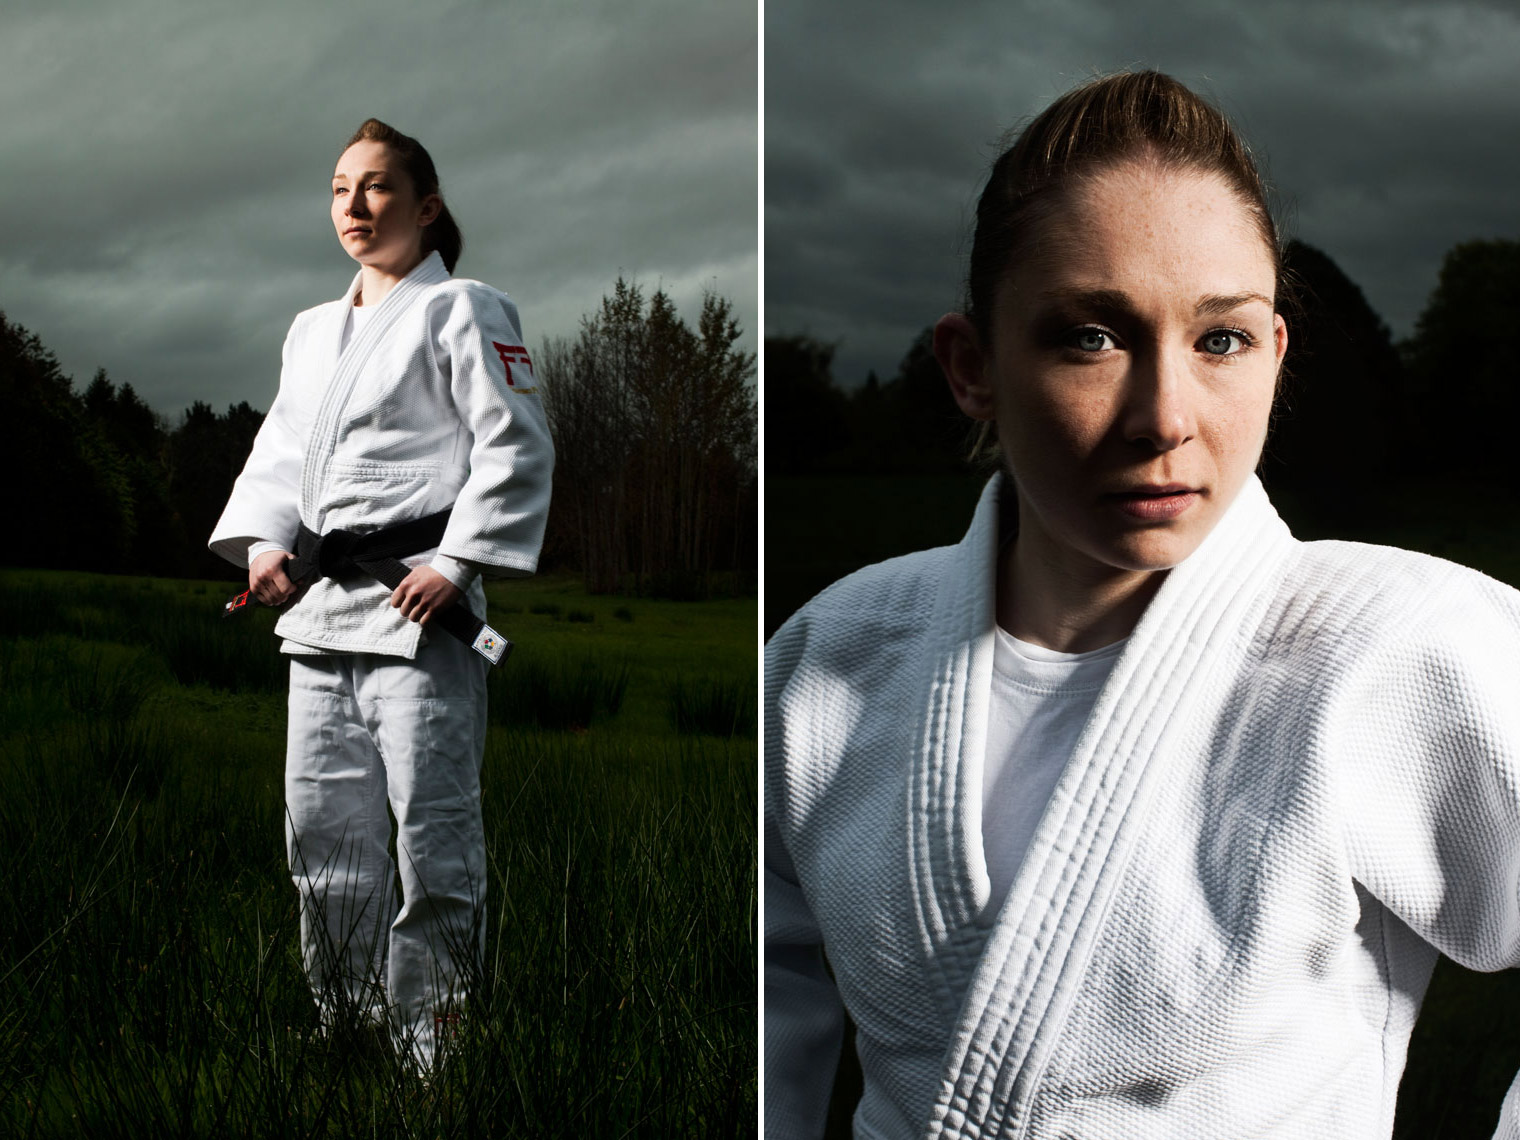 judo athlete in white outfit